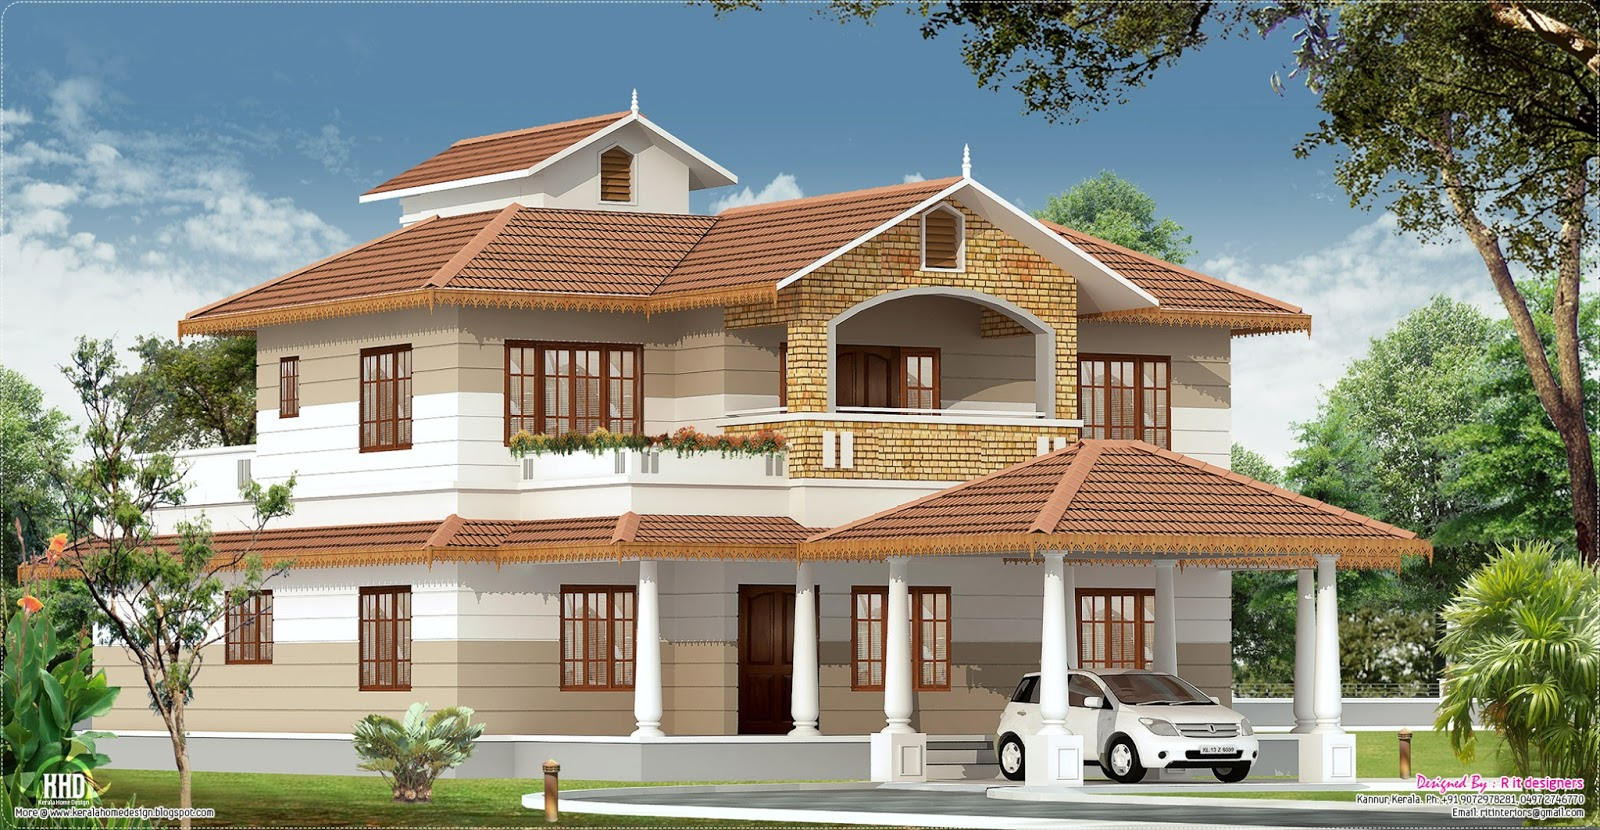 2700 kerala home with interior designs kerala for Kerala style house plans with photos